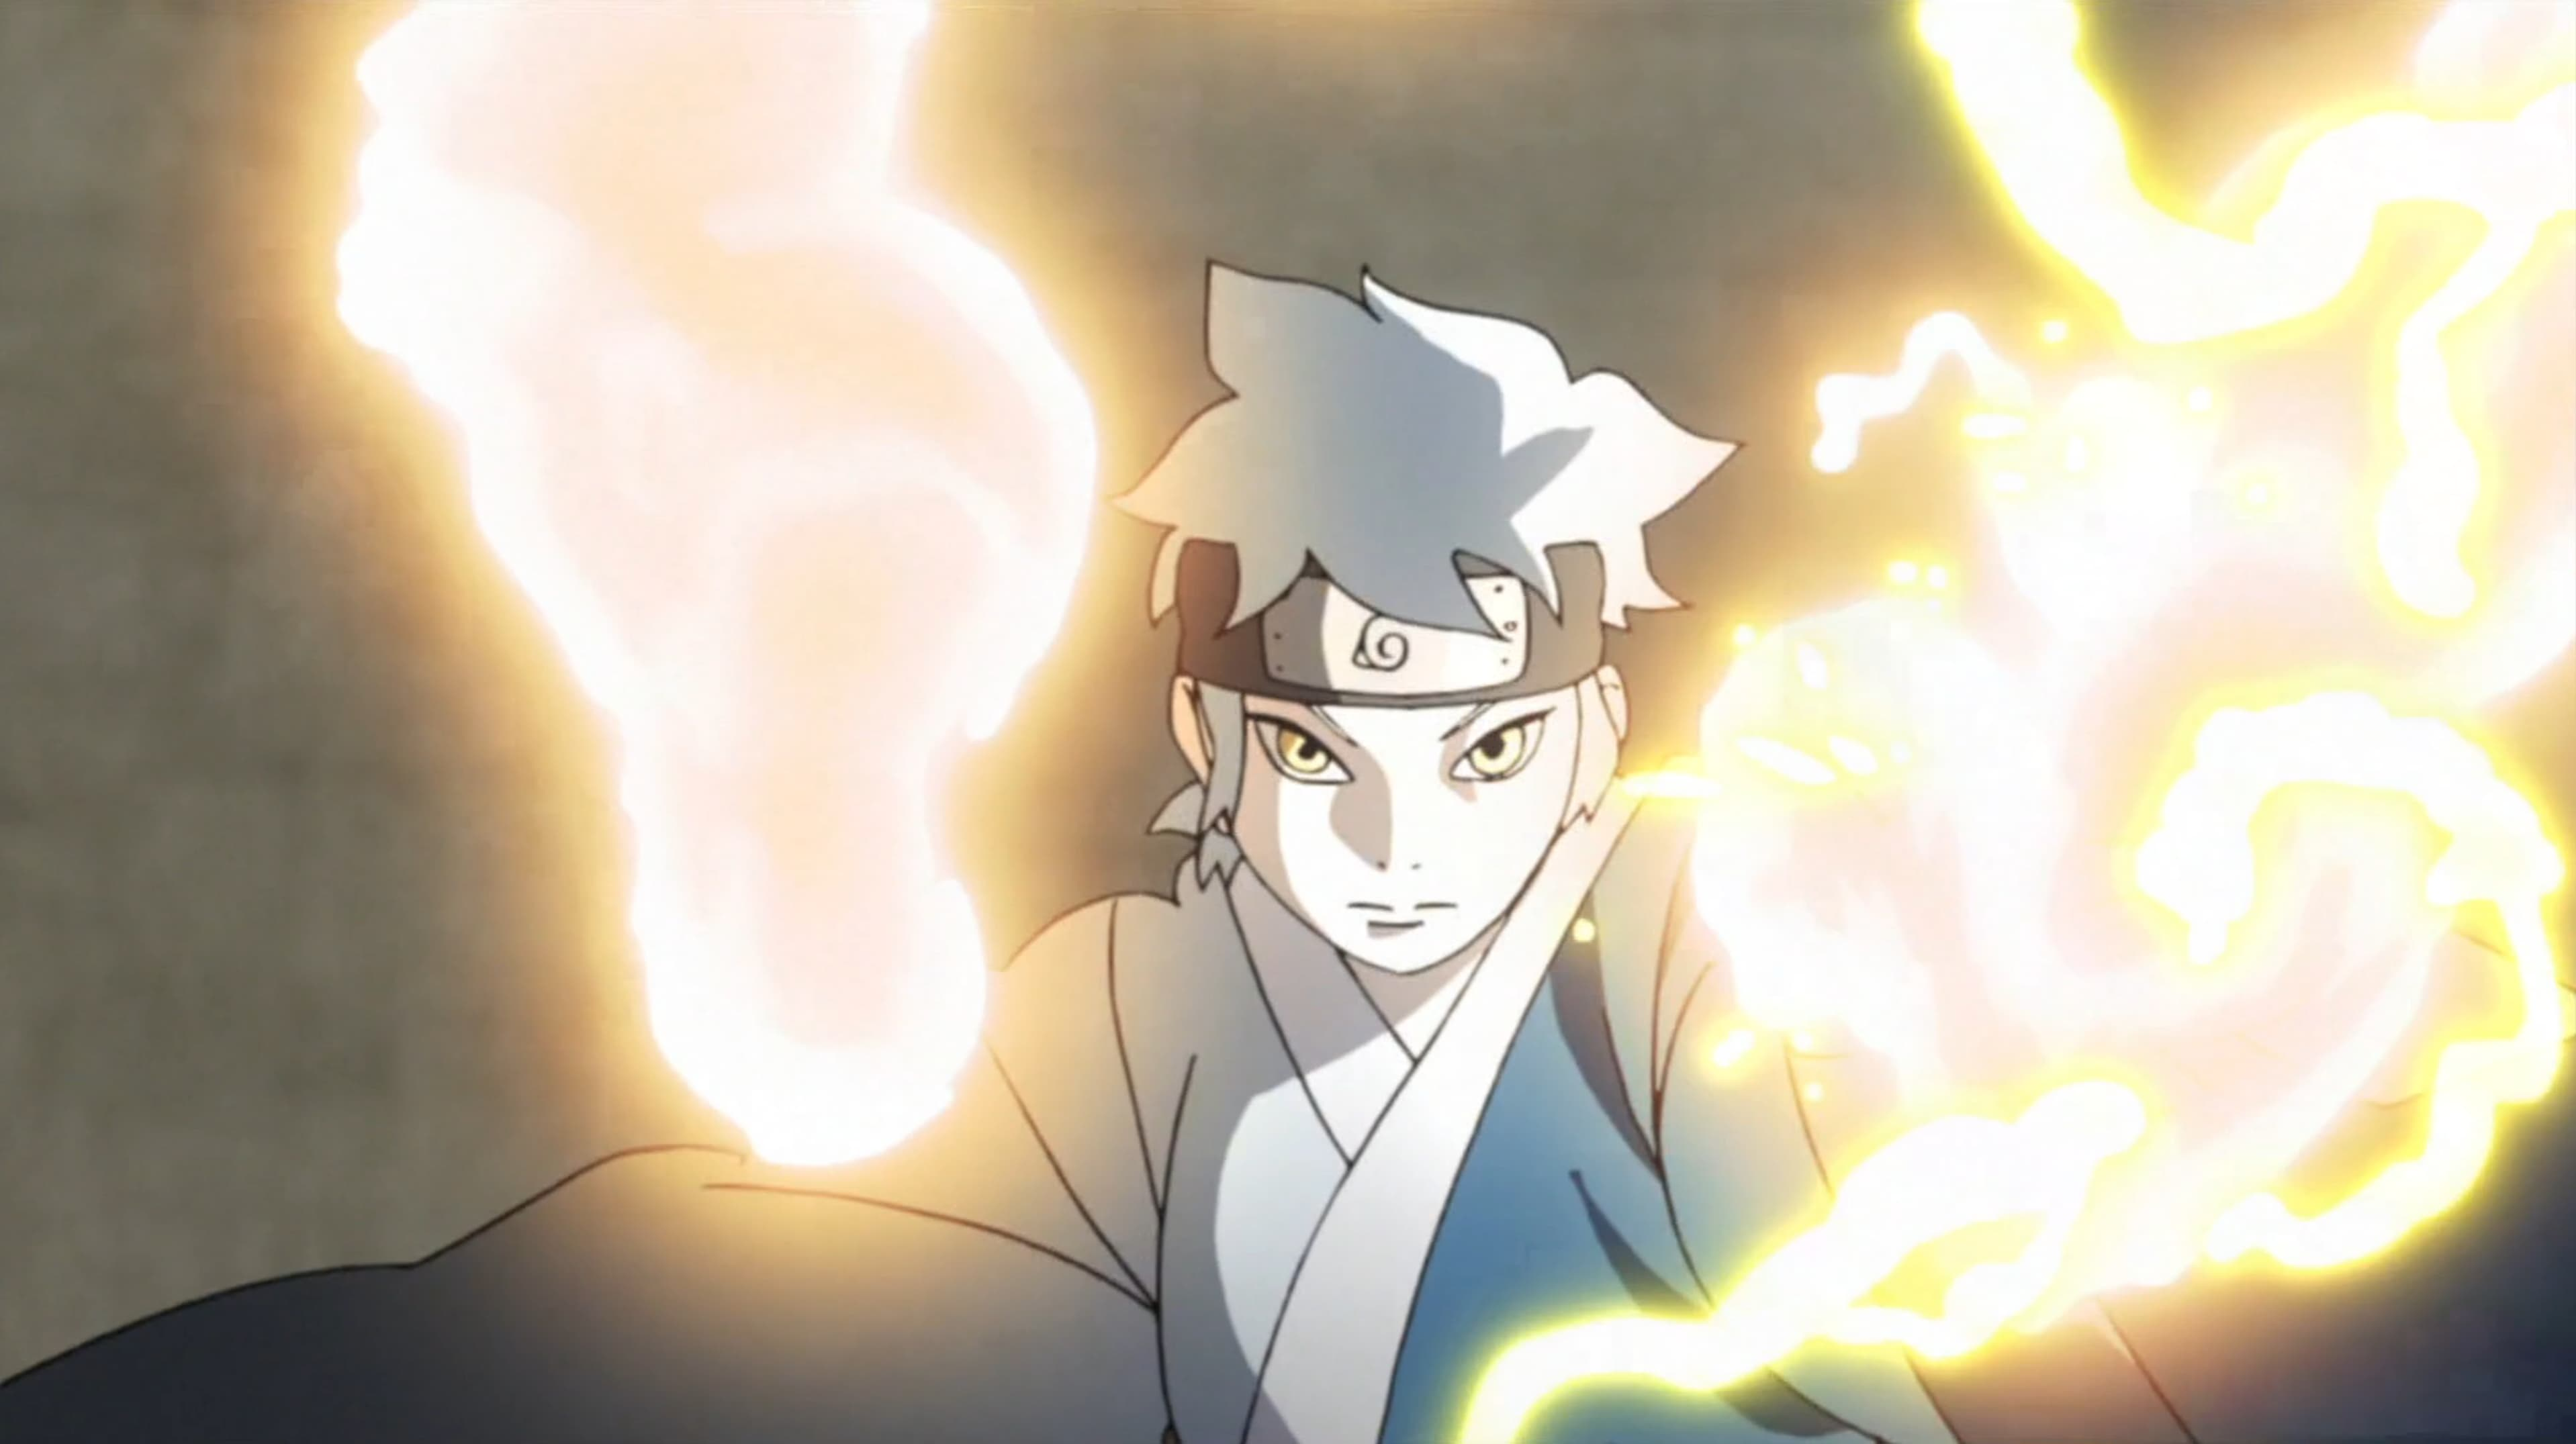 Random Strongest Next Generation Ninja From Boruto